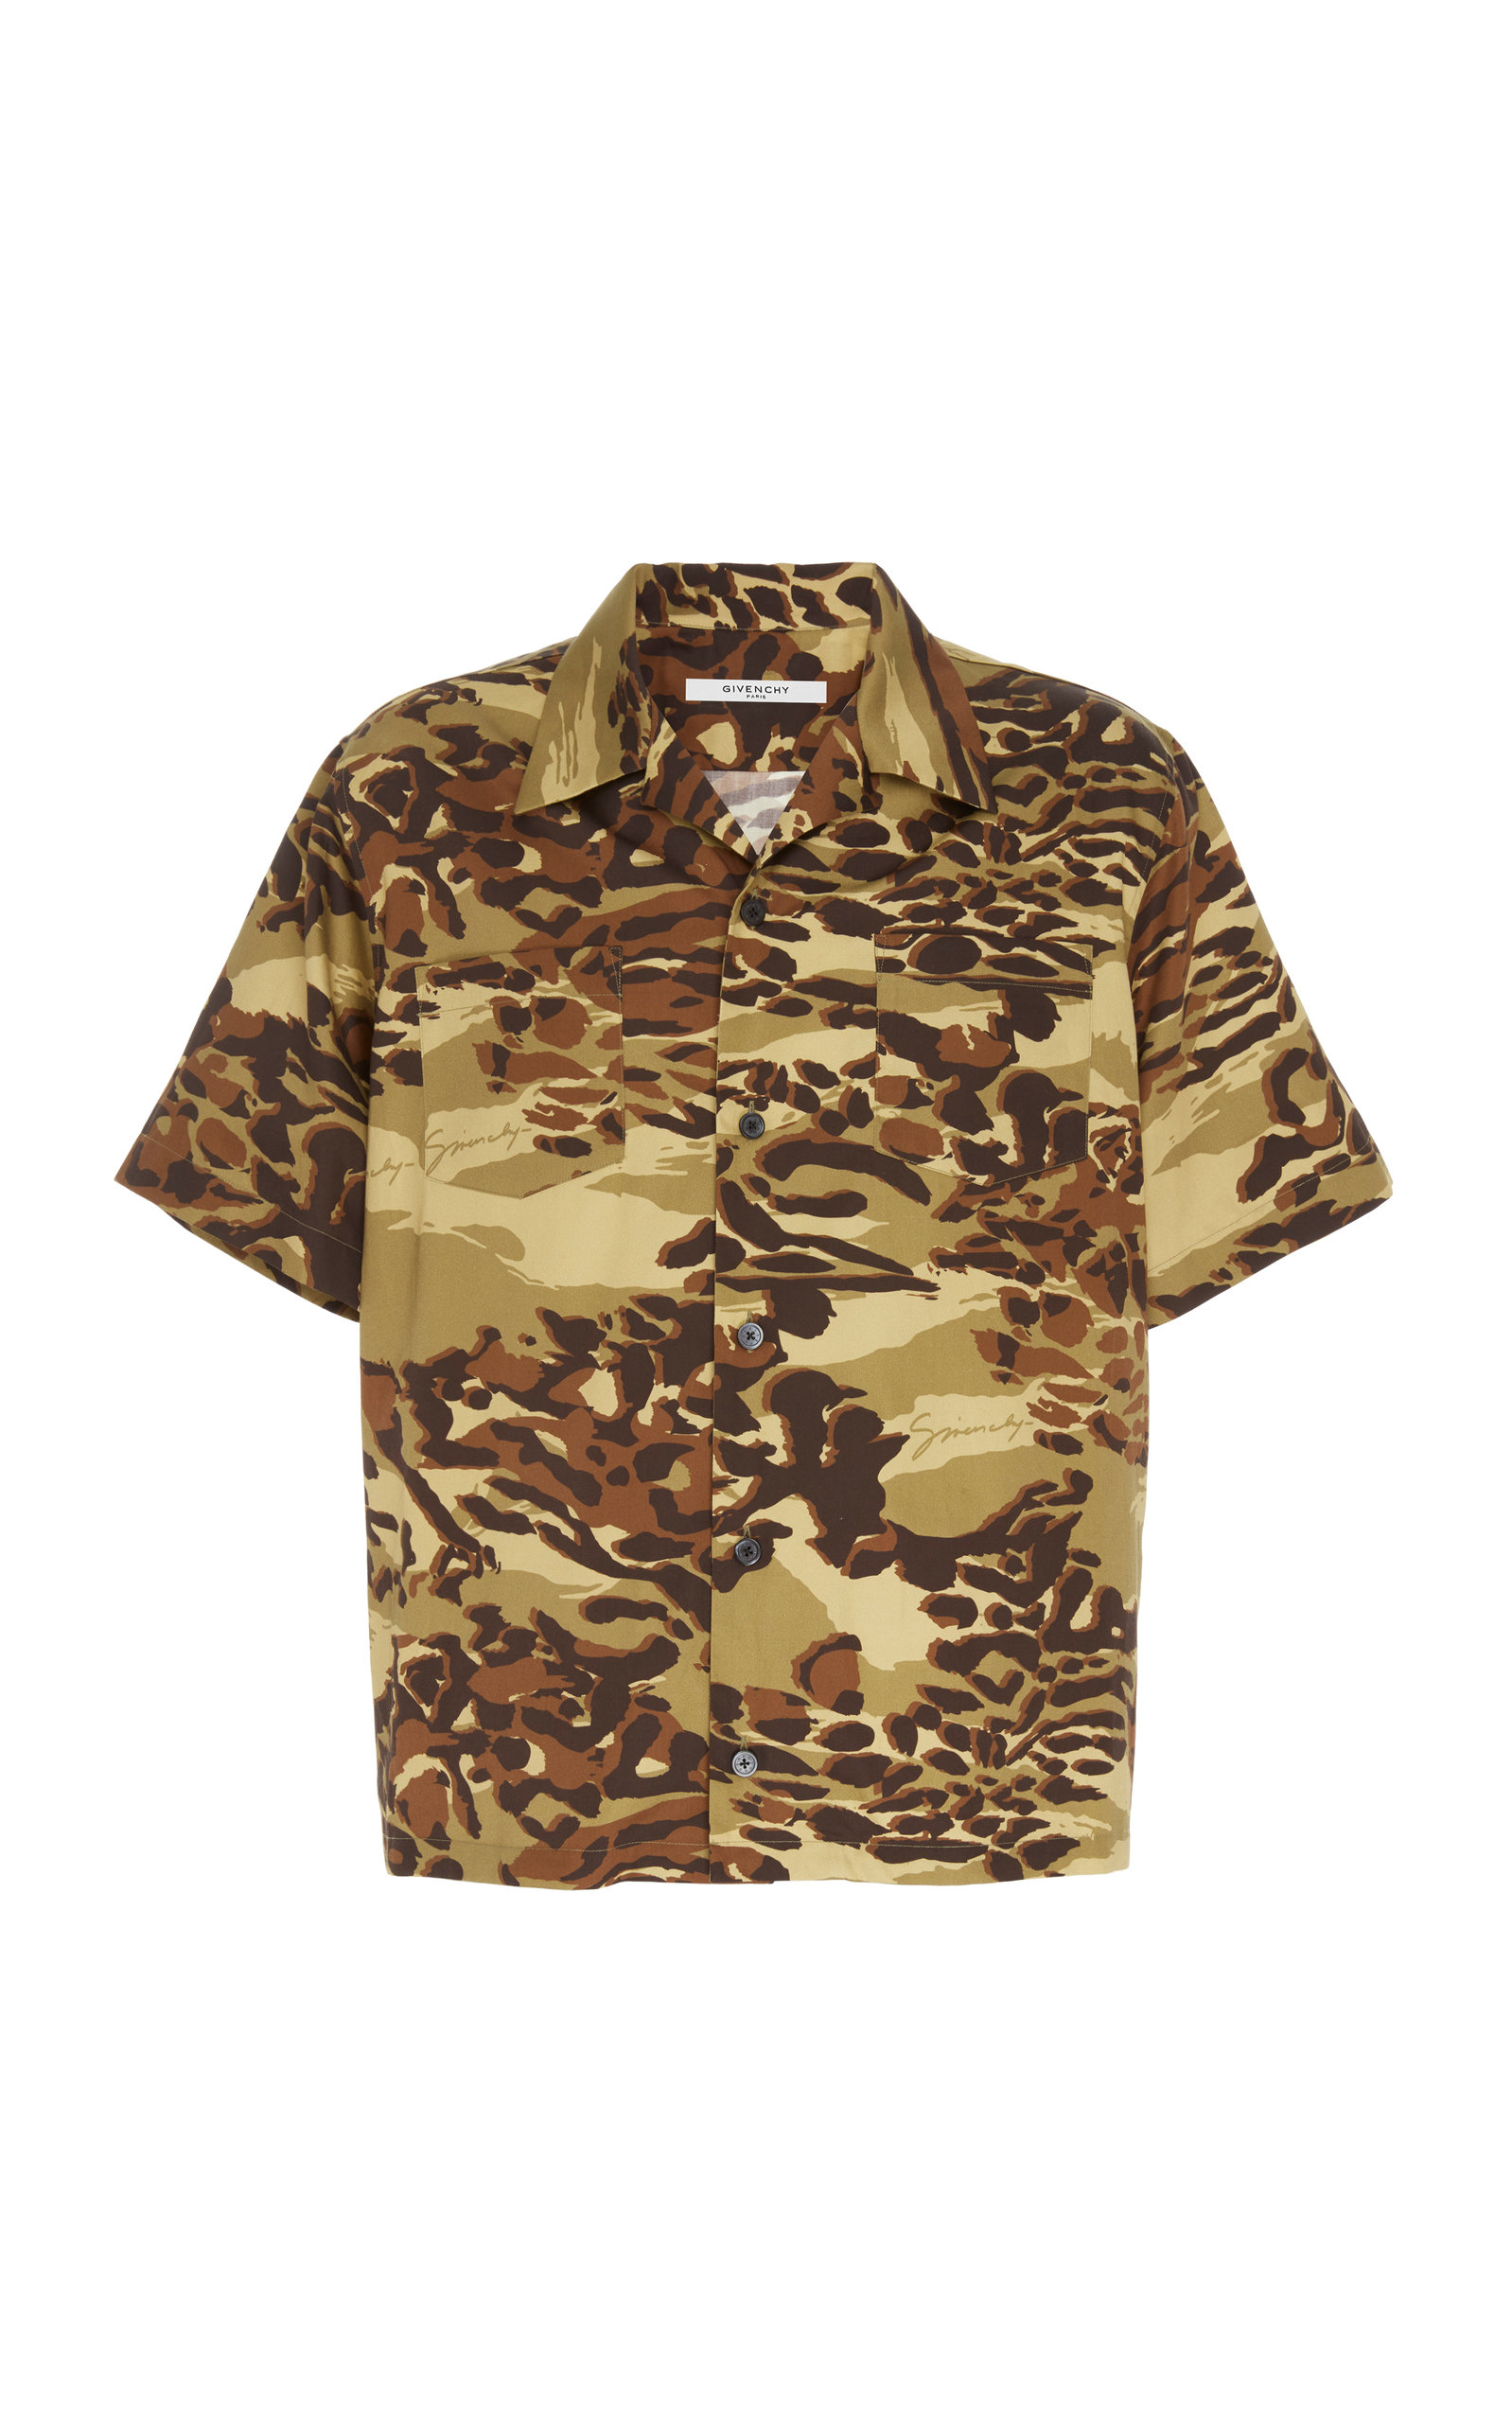 Givenchy T-shirts Camouflage Cotton Camp Shirt